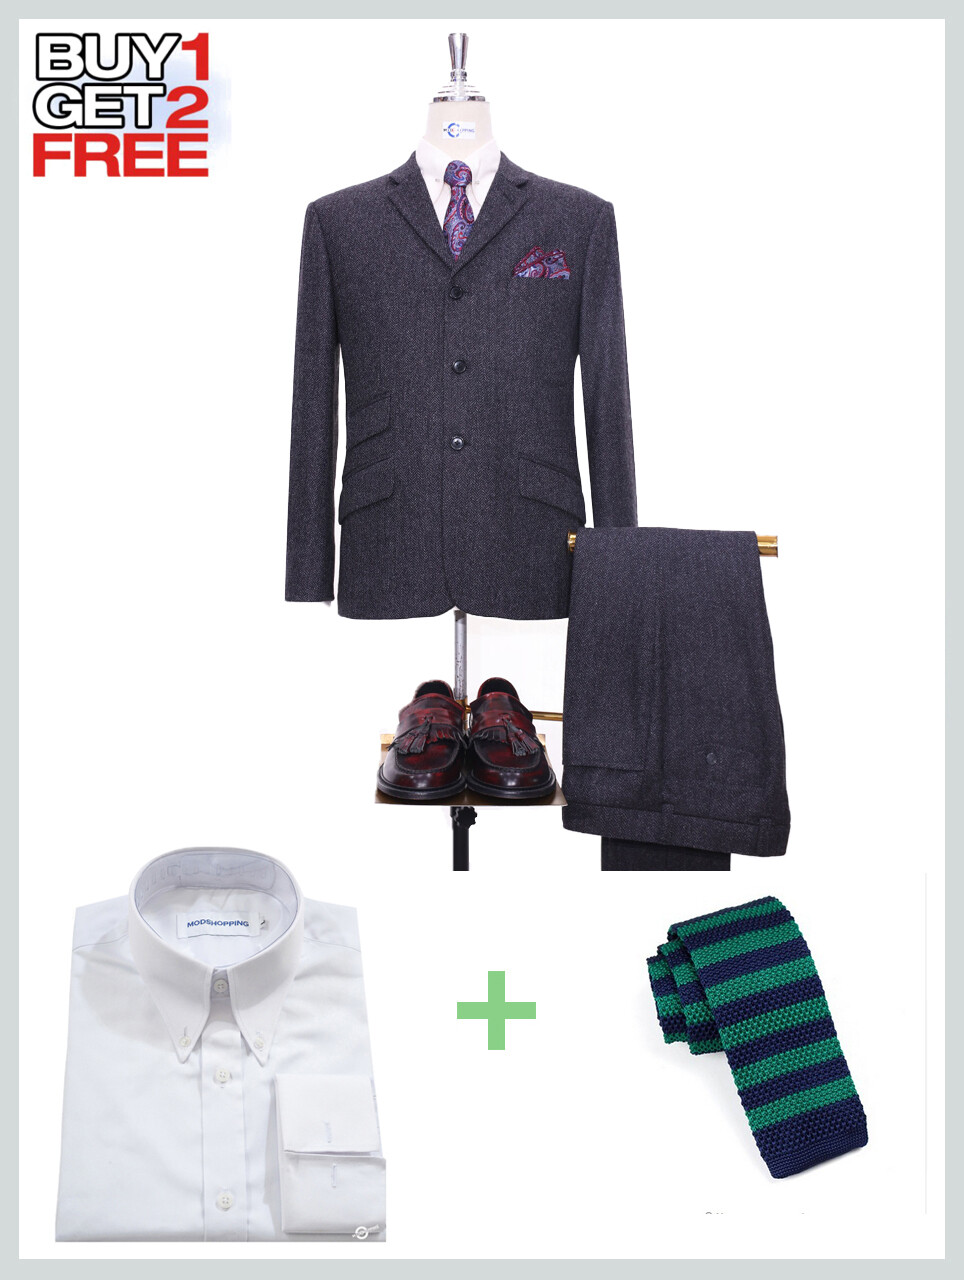 Suit Package   Charcoal Grey Herringbone 3 Button Suit